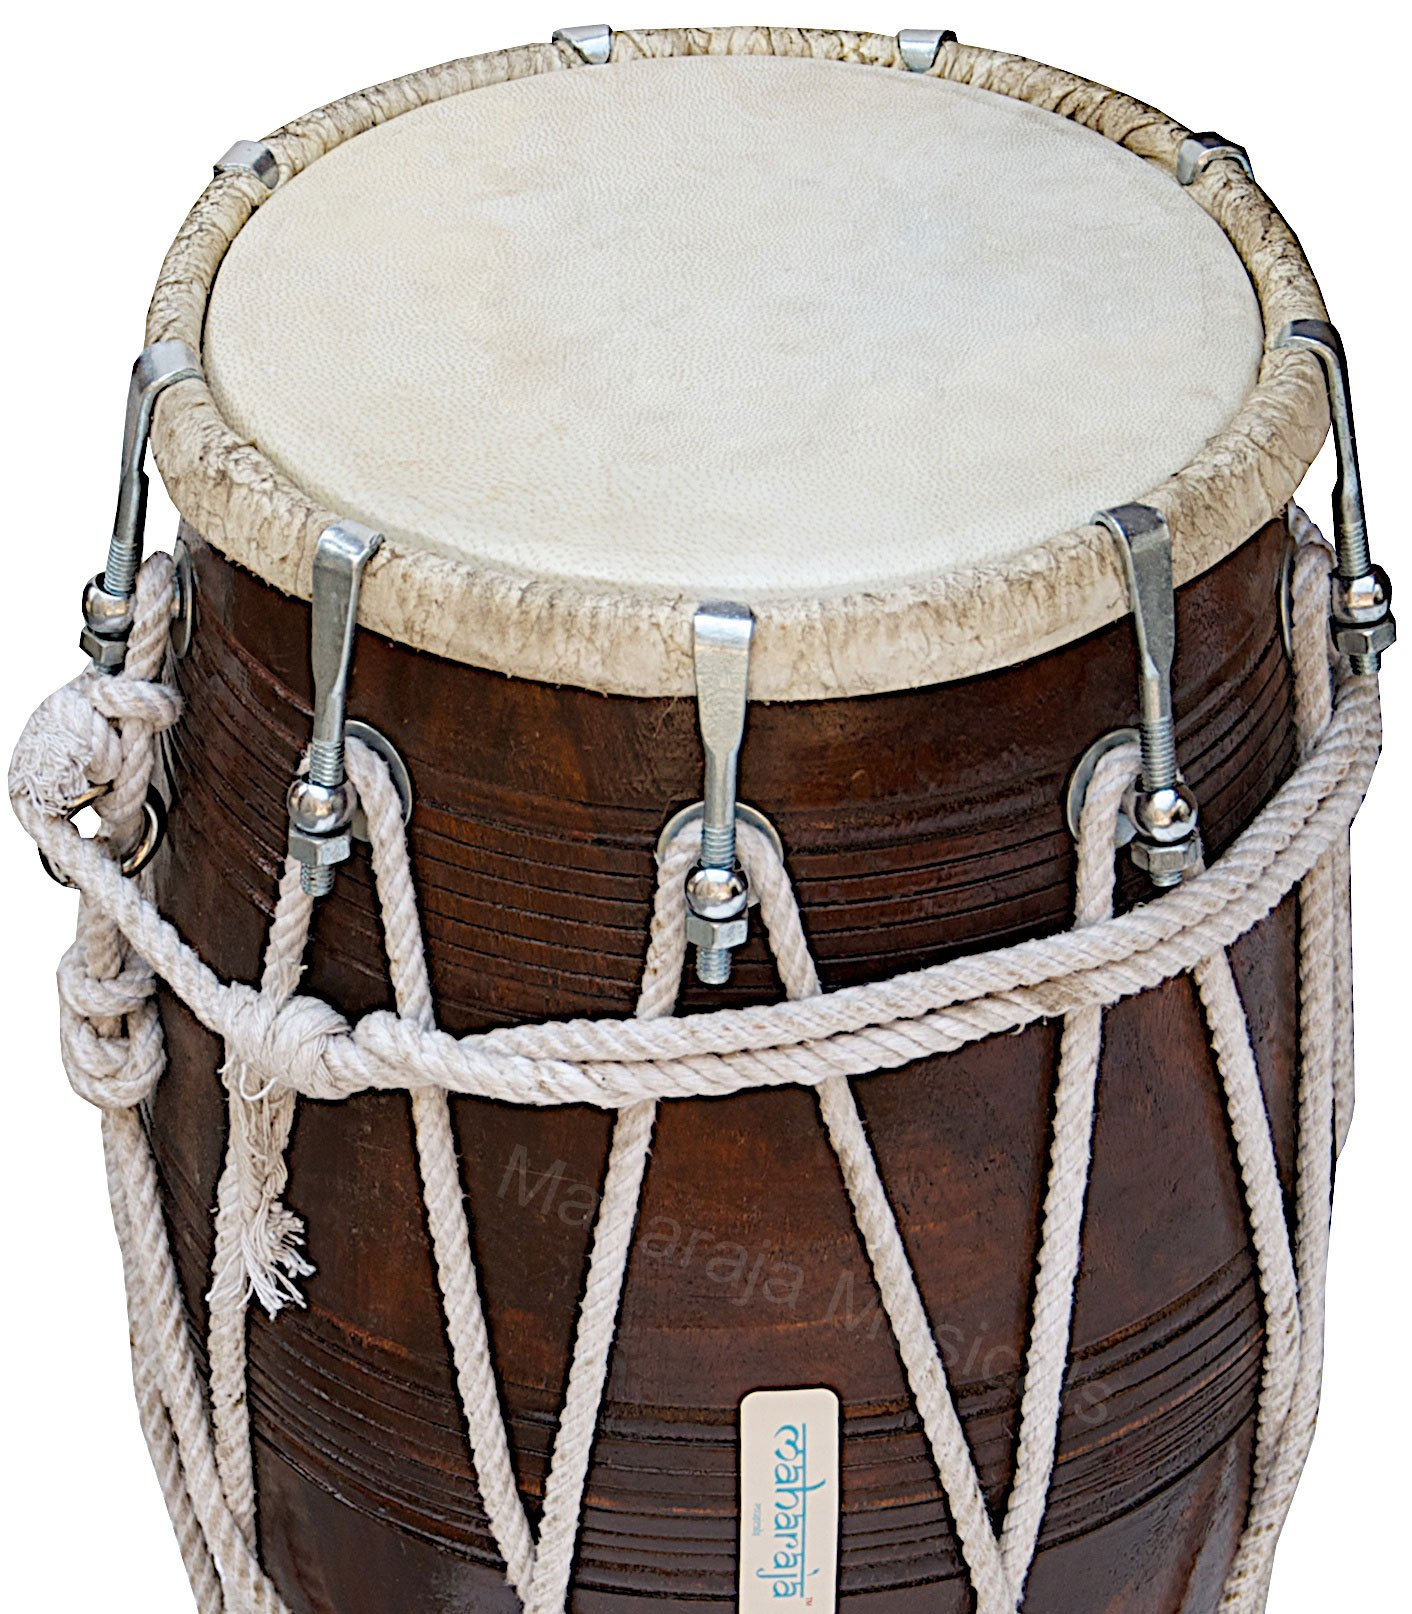 Special Dholak Drum by Maharaja Musicals, Professional Quality, Sheesham Wood, Padded Bag, Spanner, Dholki Musicals Instrument (PDI-BBC) by Maharaja Musicals (Image #6)